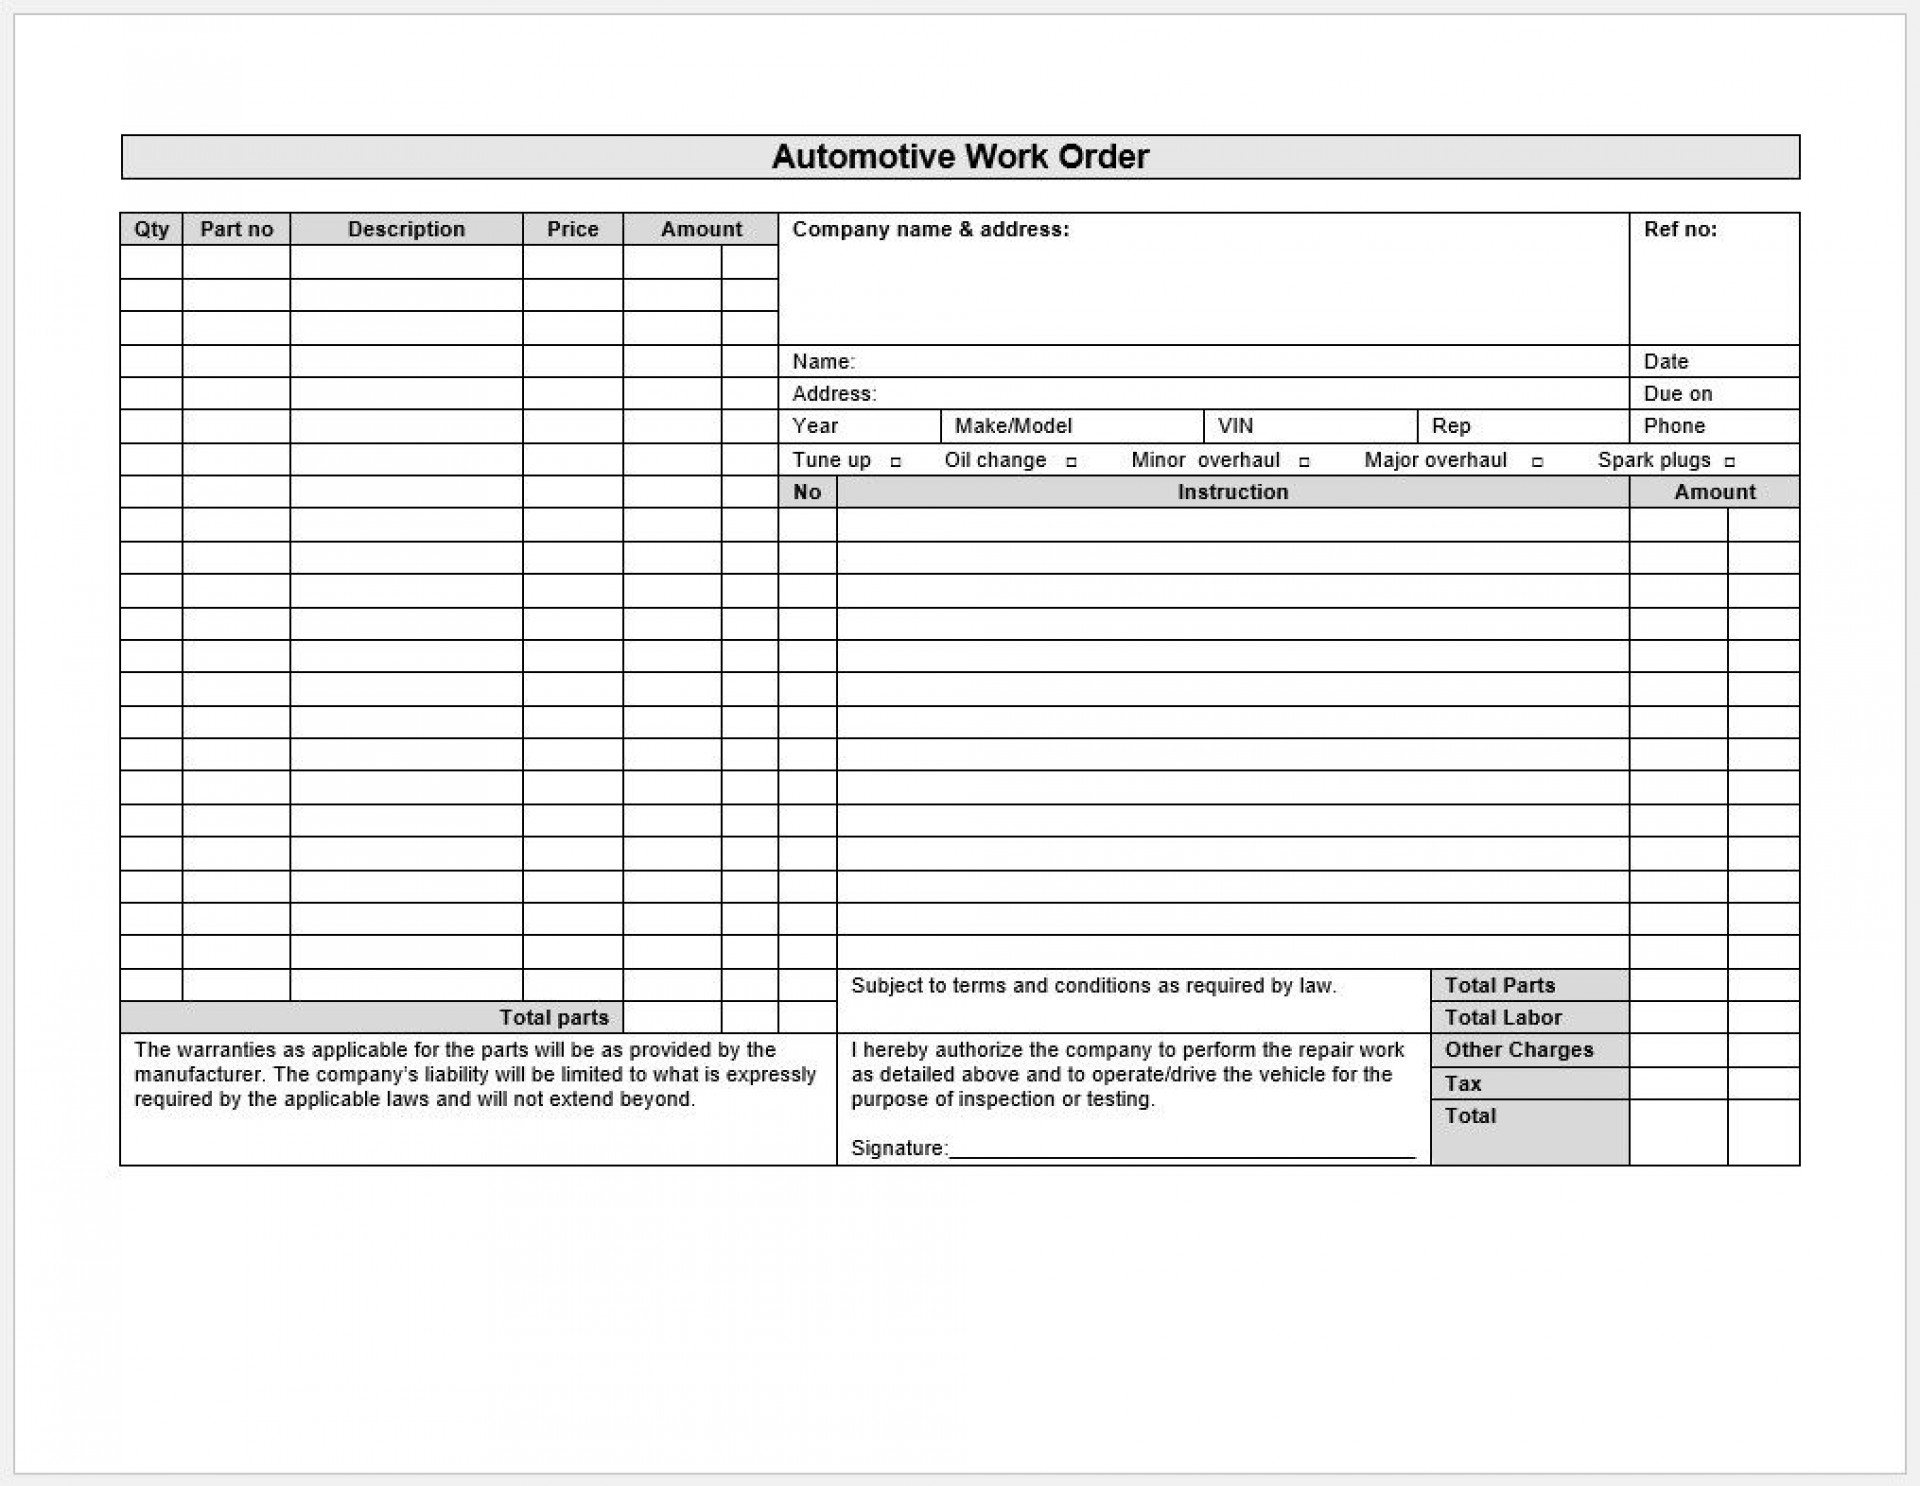 009 Marvelou Auto Repair Order Template Example  Work Free Automotive Car1920